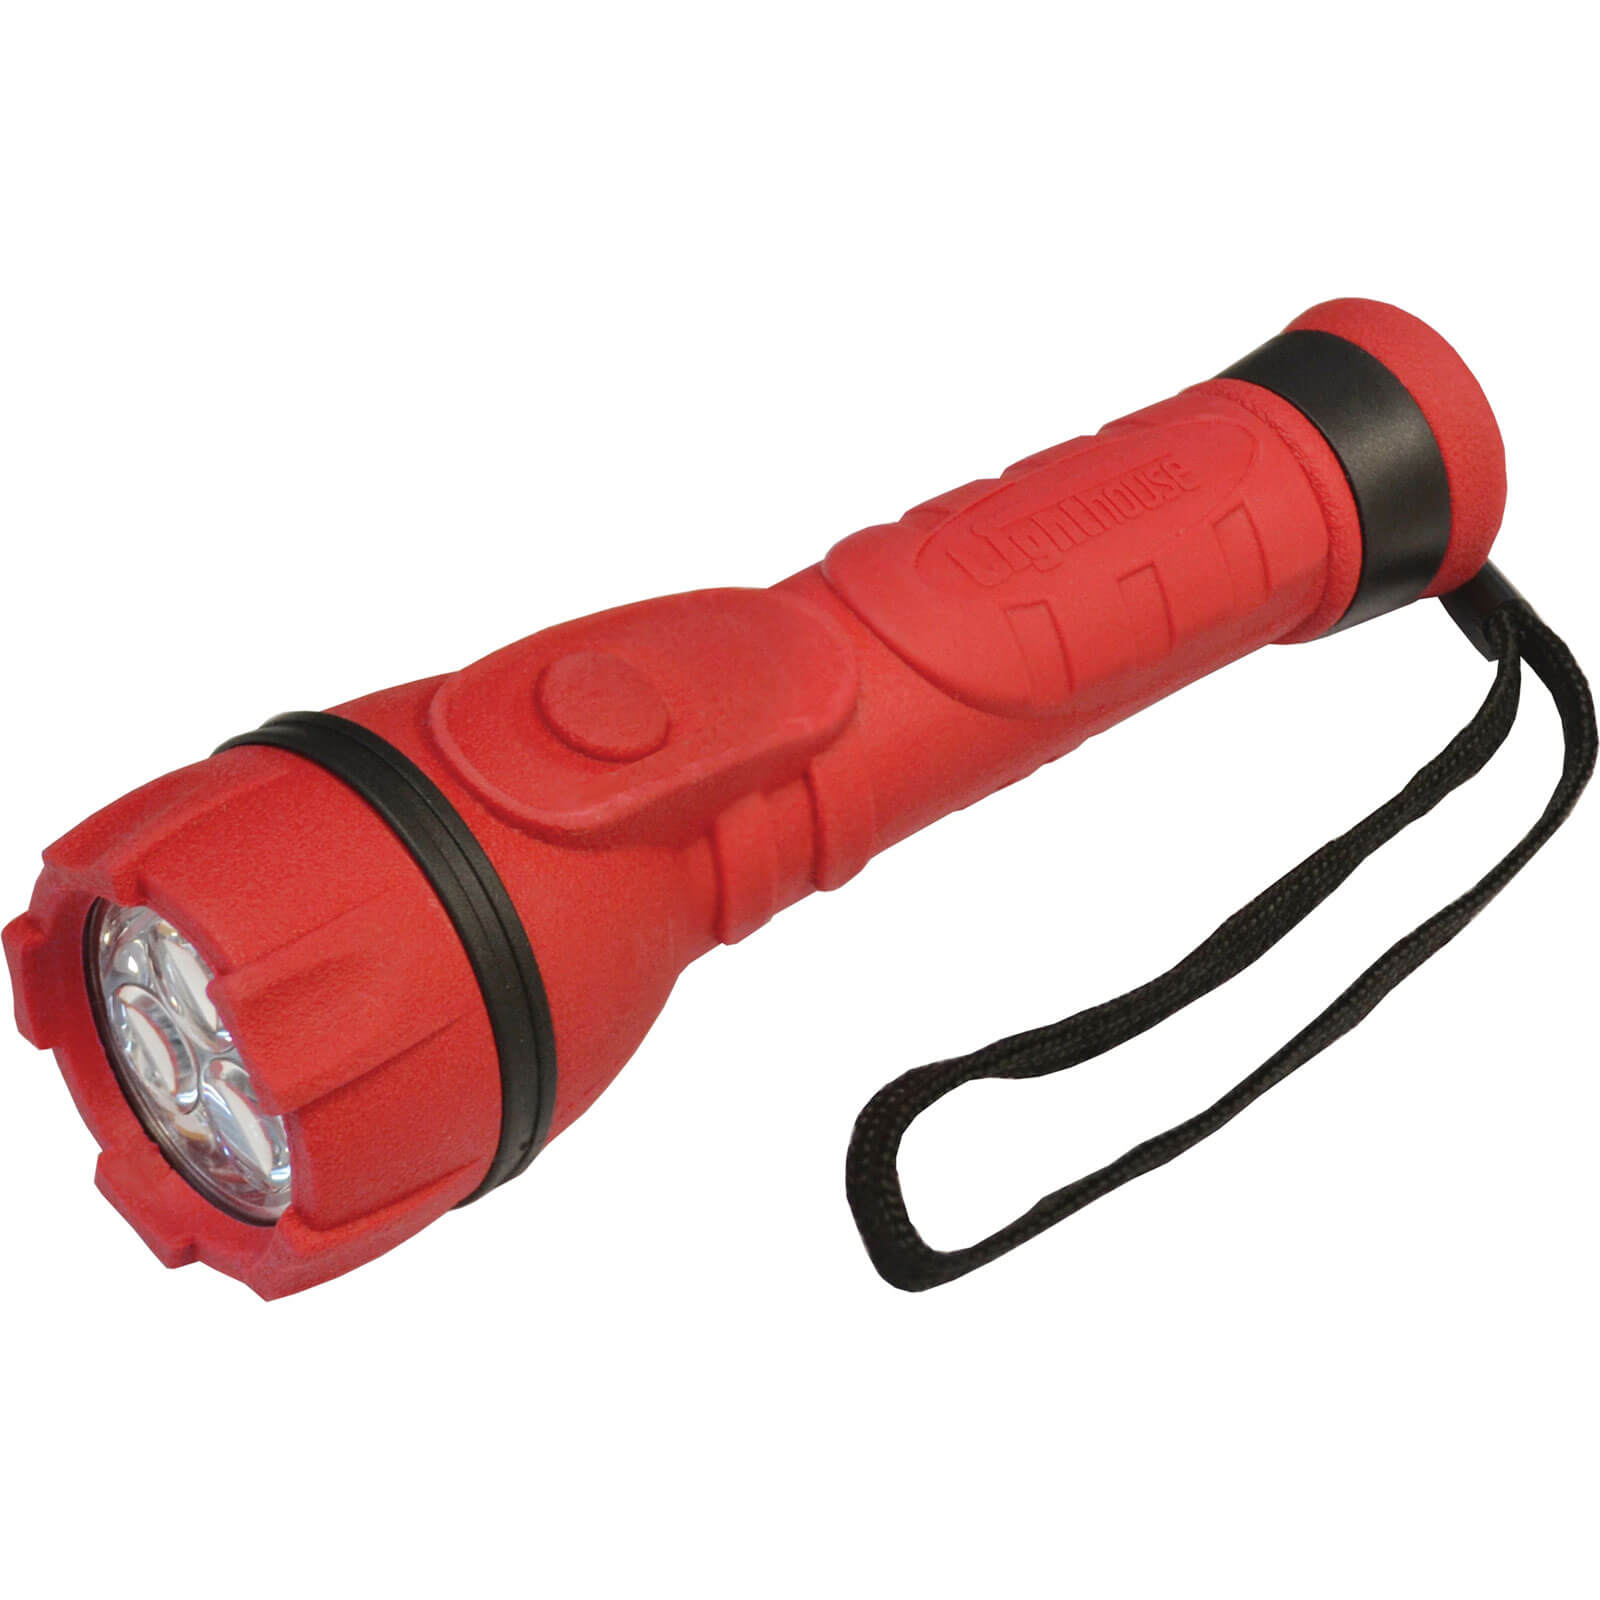 Image of Lighthouse 3 LED Rubber Torch Red